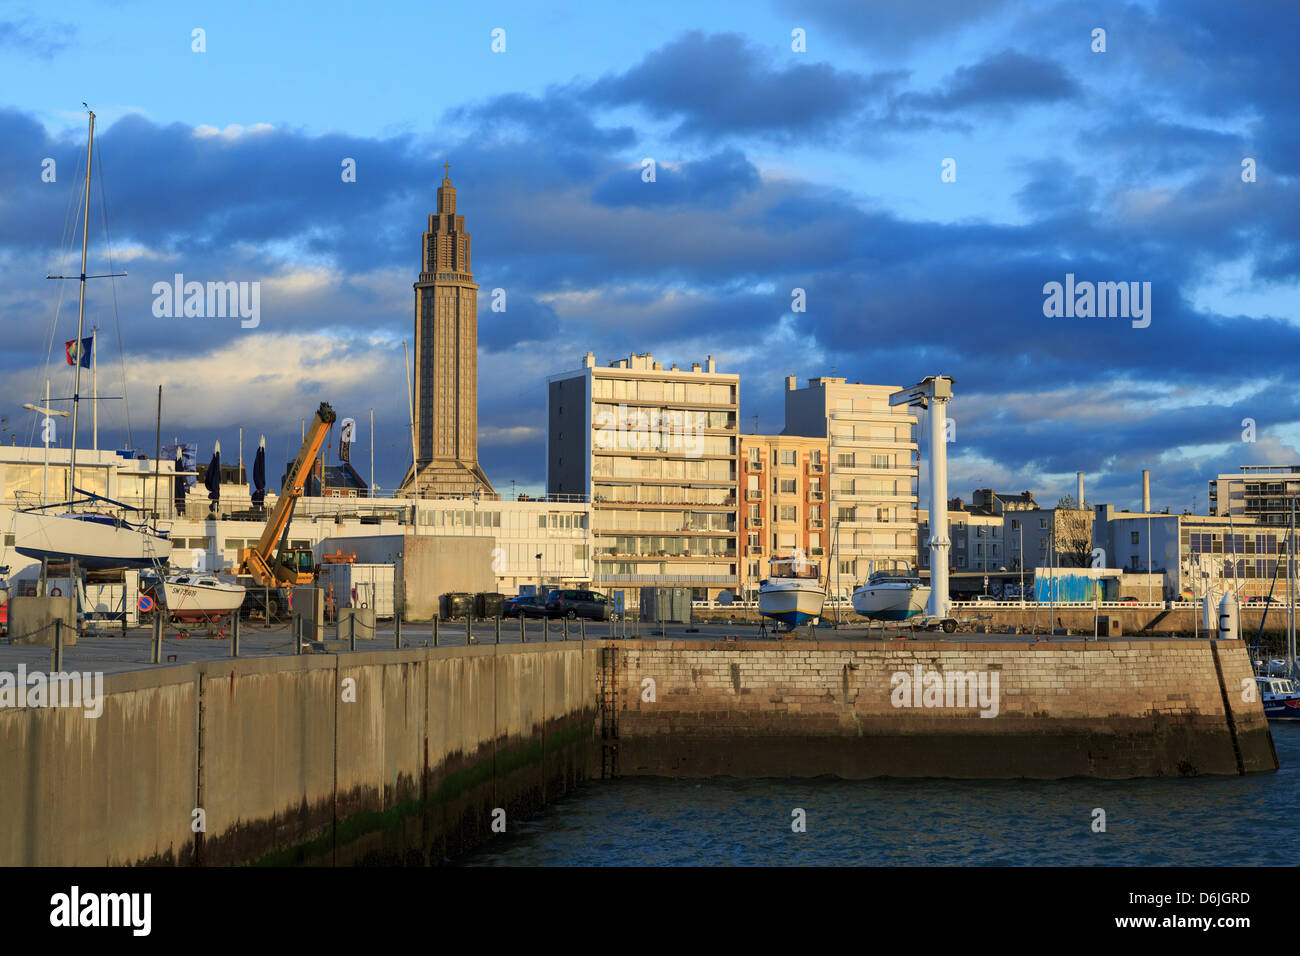 Yacht Marina in Le Havre, Normandy, France, Europe - Stock Image